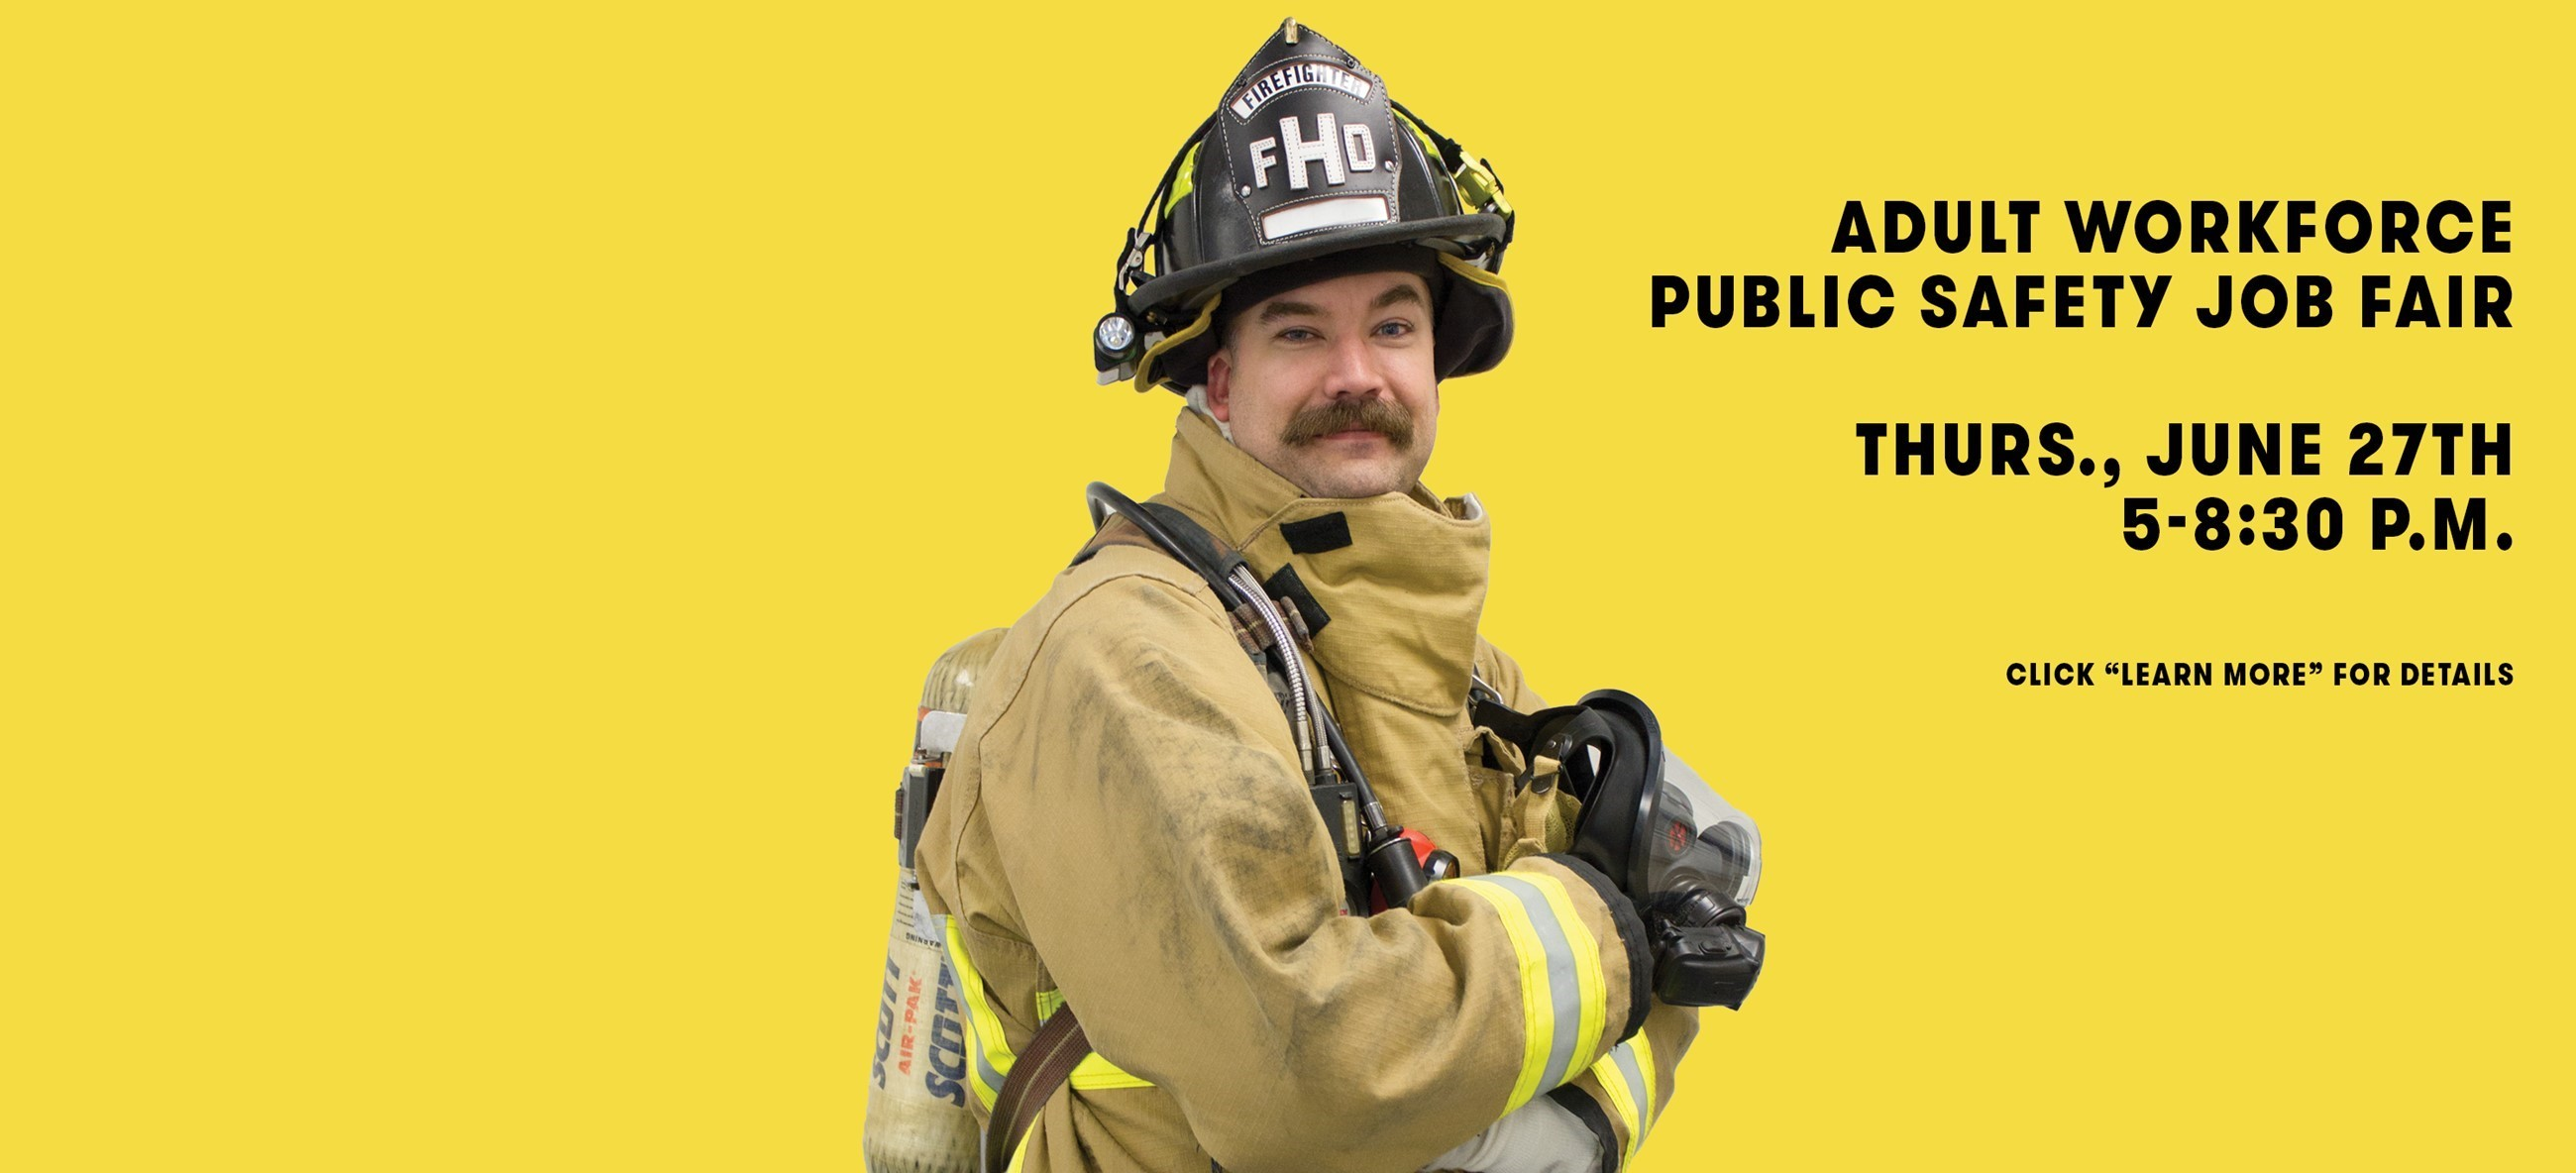 Firefighter standing with yellow background